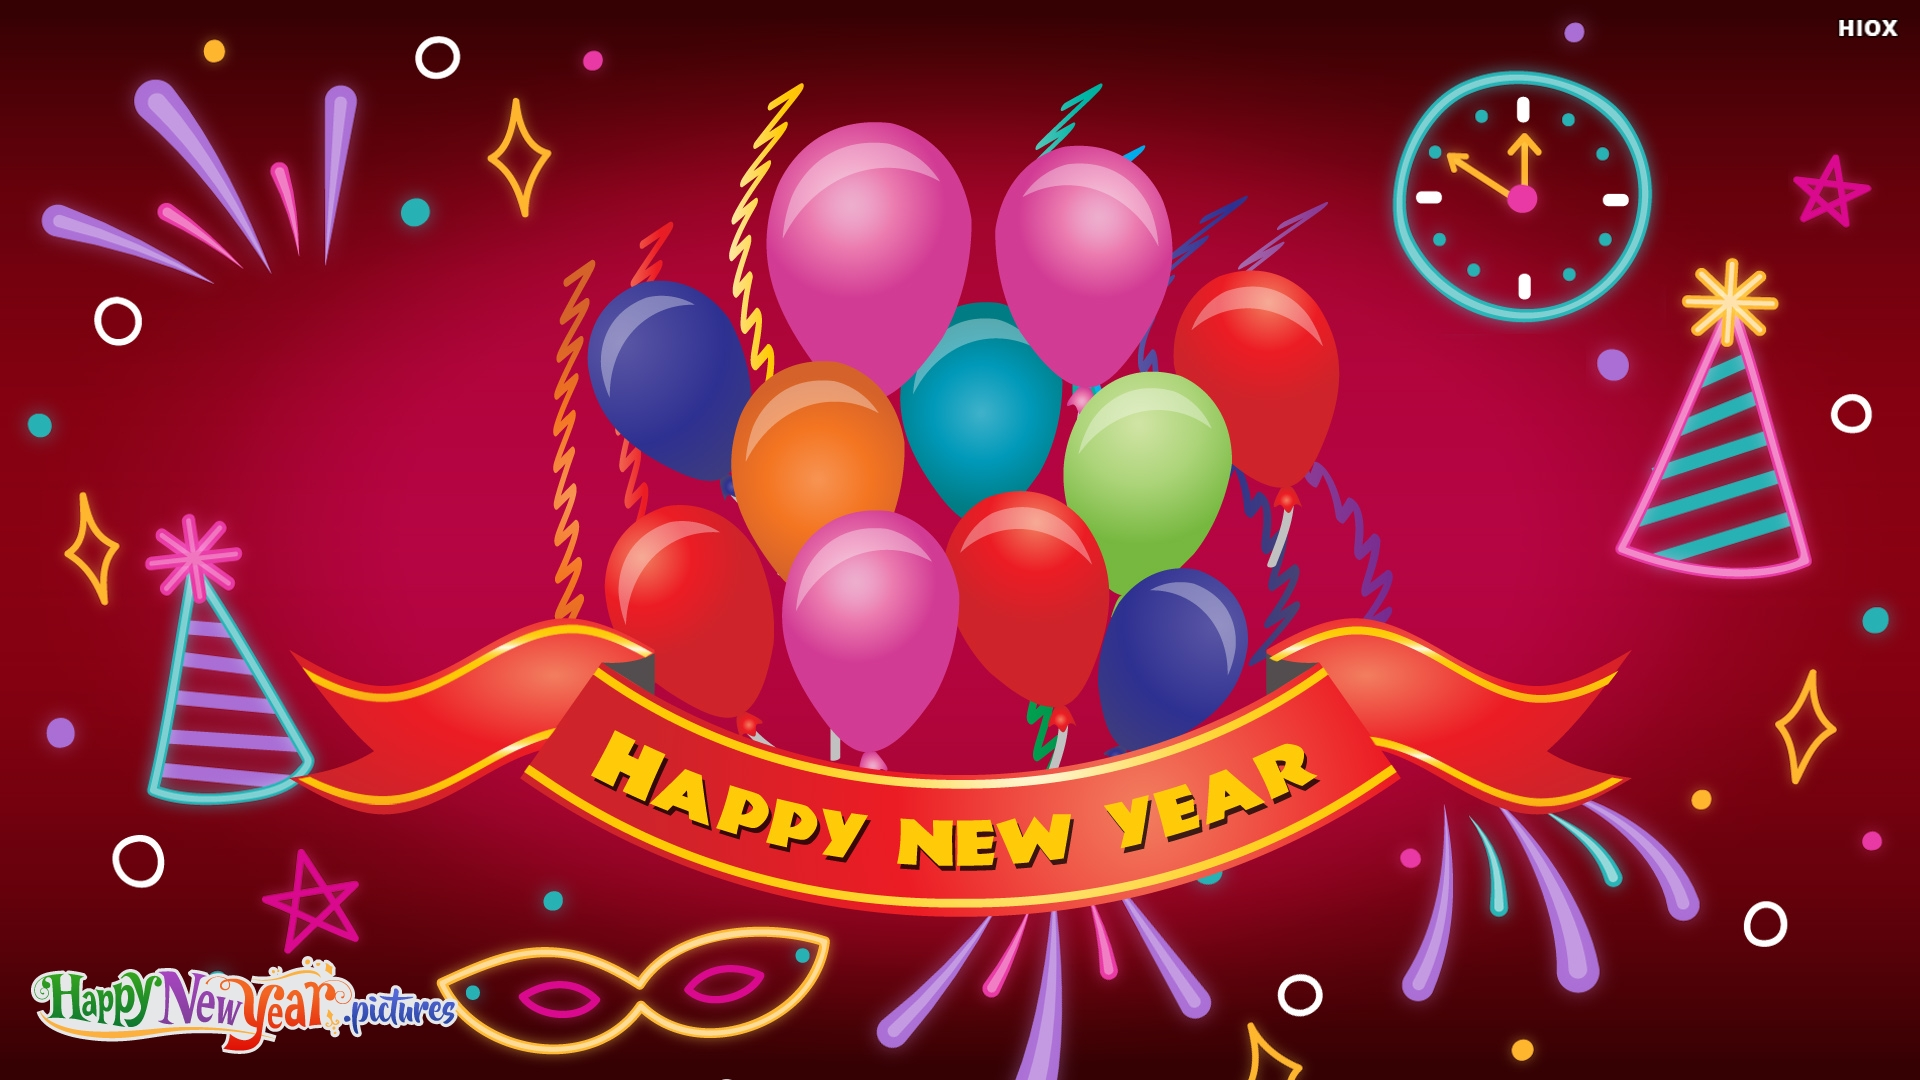 Colorful Happy New Year Greetings To All